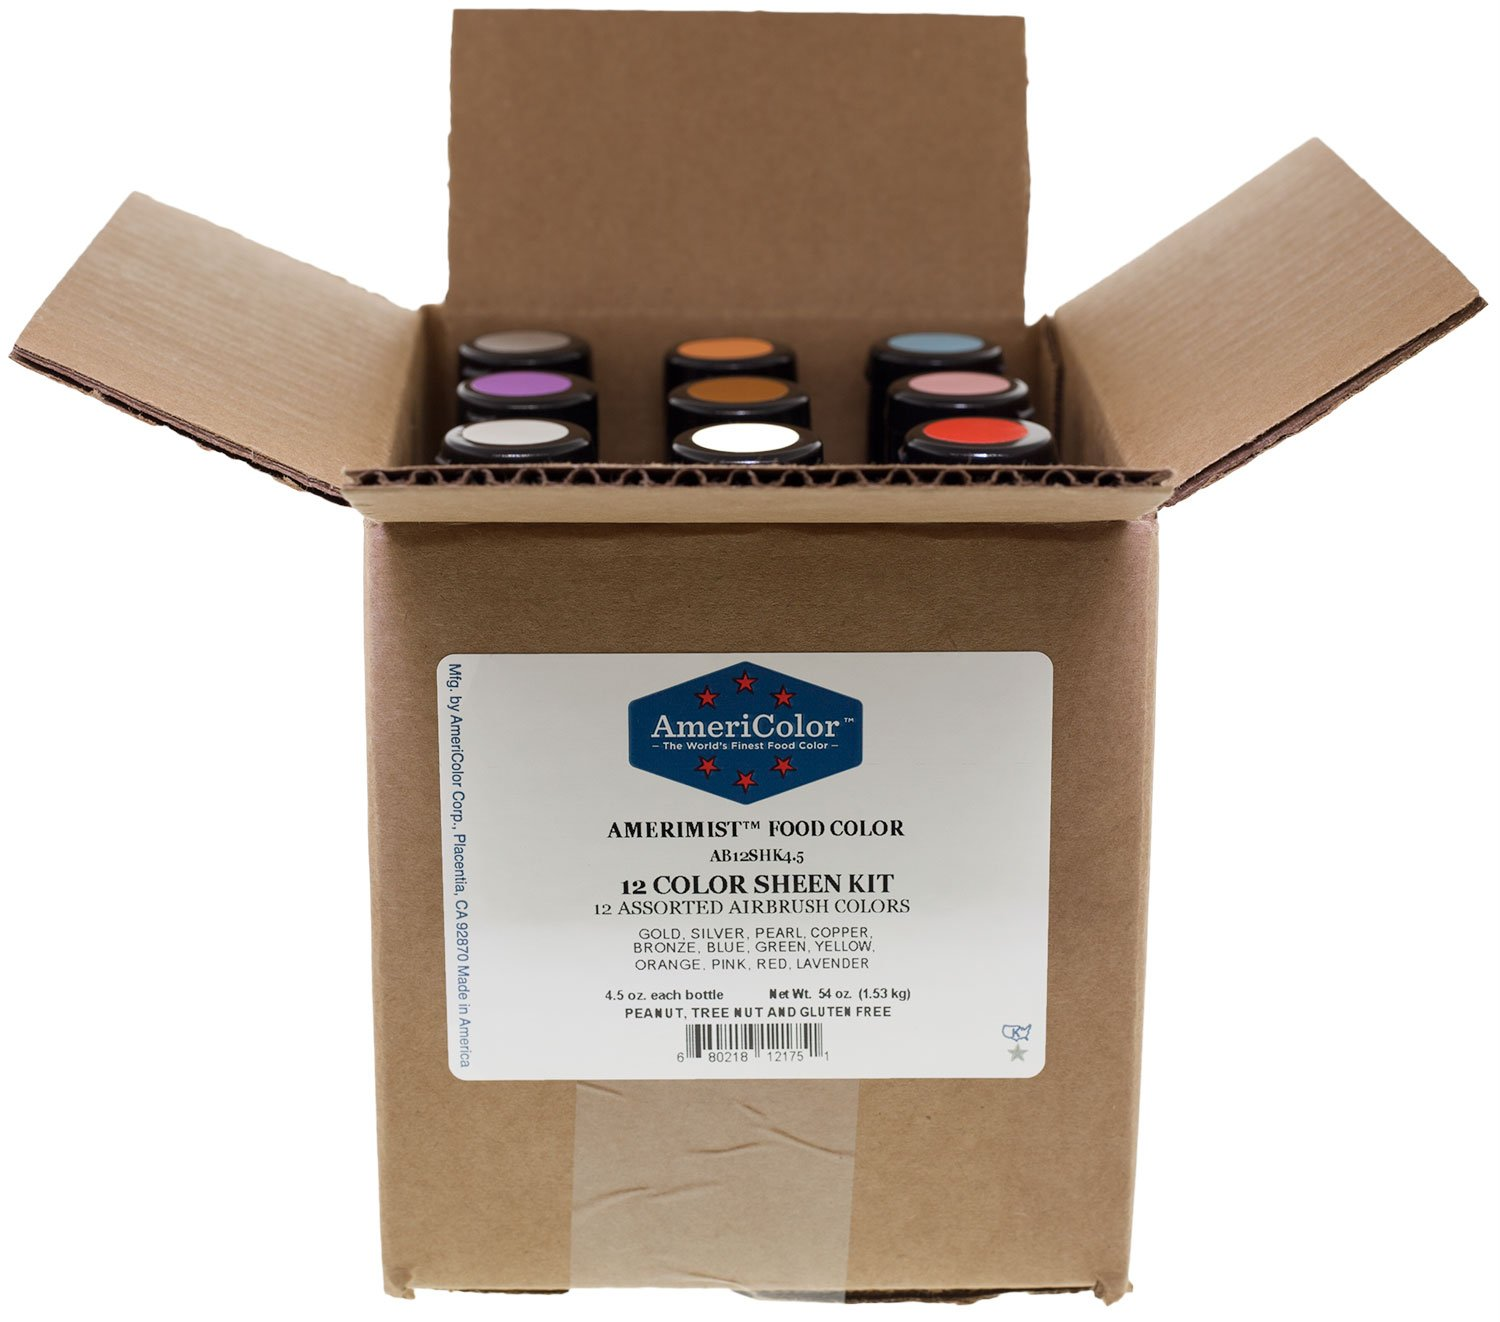 Americolor Sheen Airbrush Color Kit, Twelve 4.5-Oz Colors (Shown in Picture)